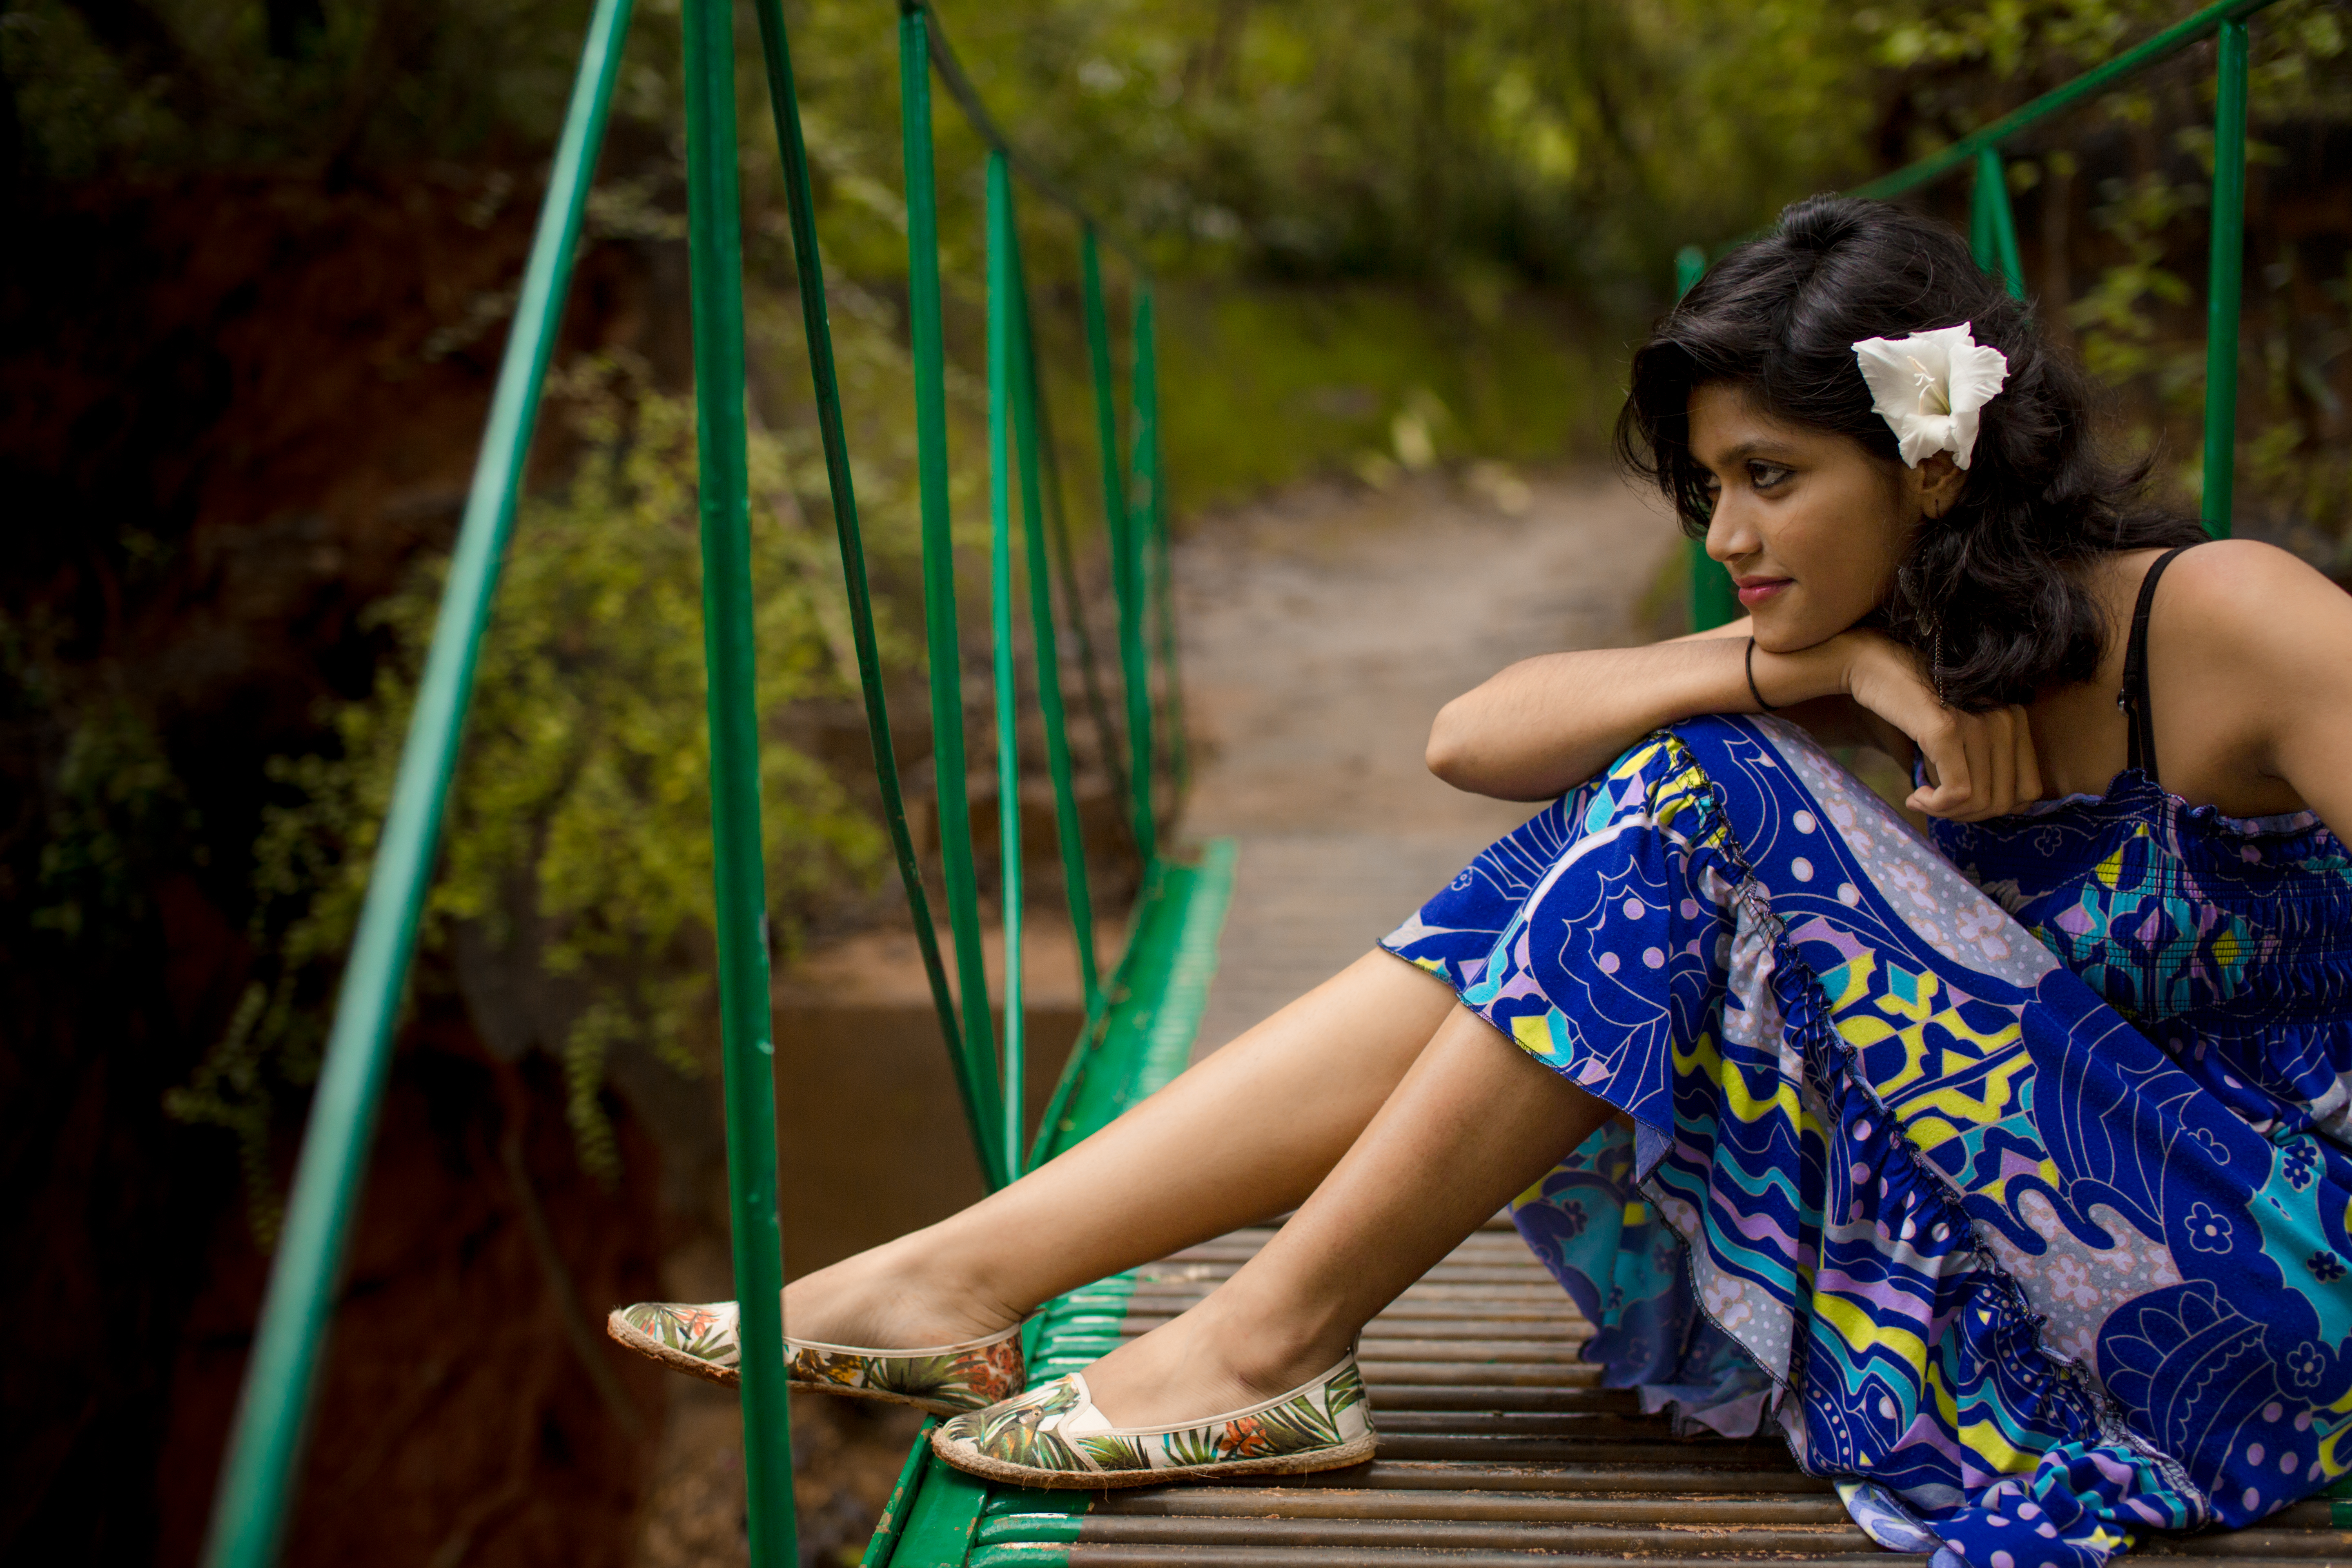 Modelling photography